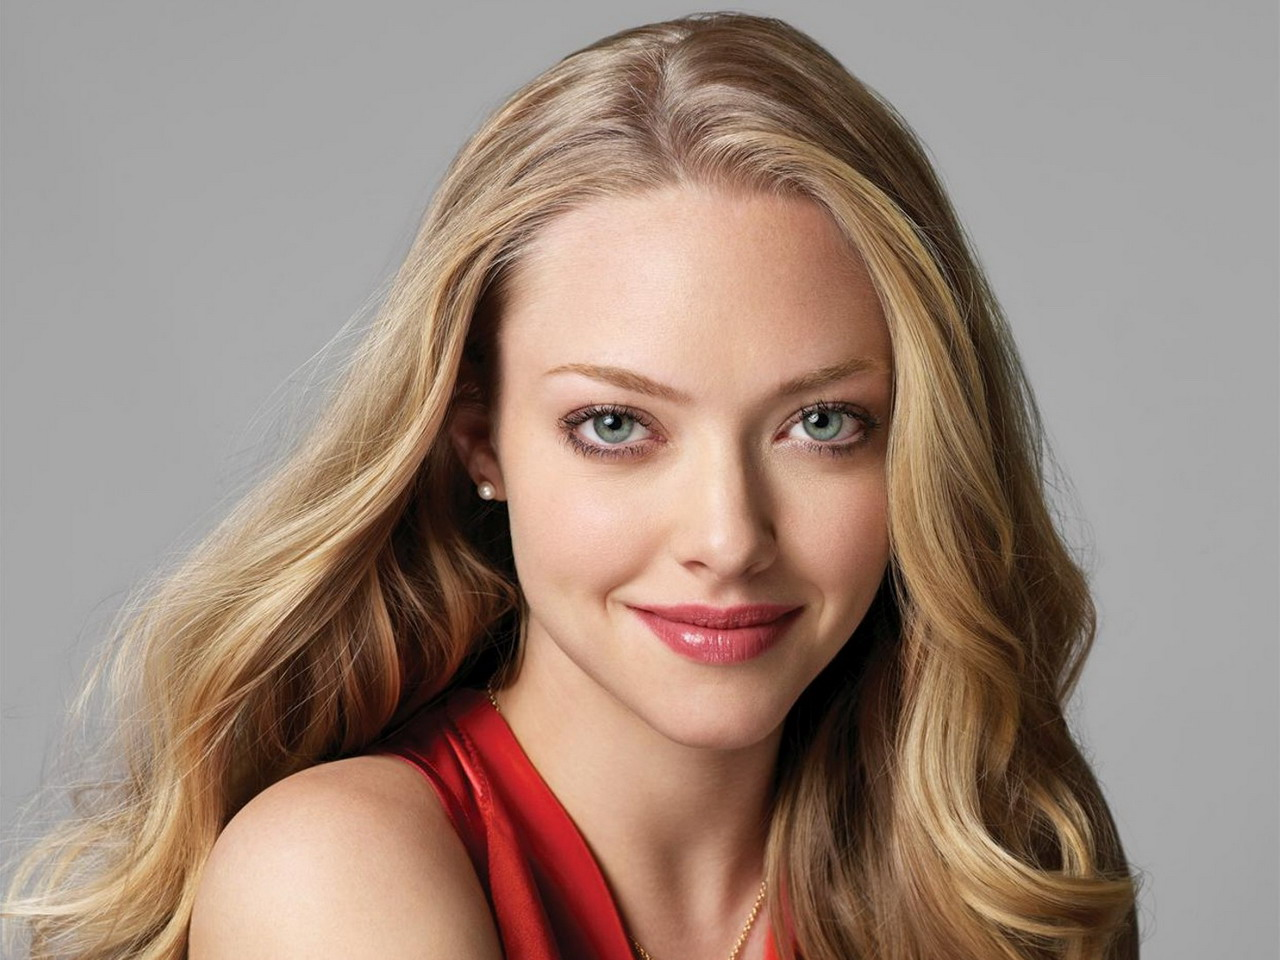 Amanda Seyfried Images